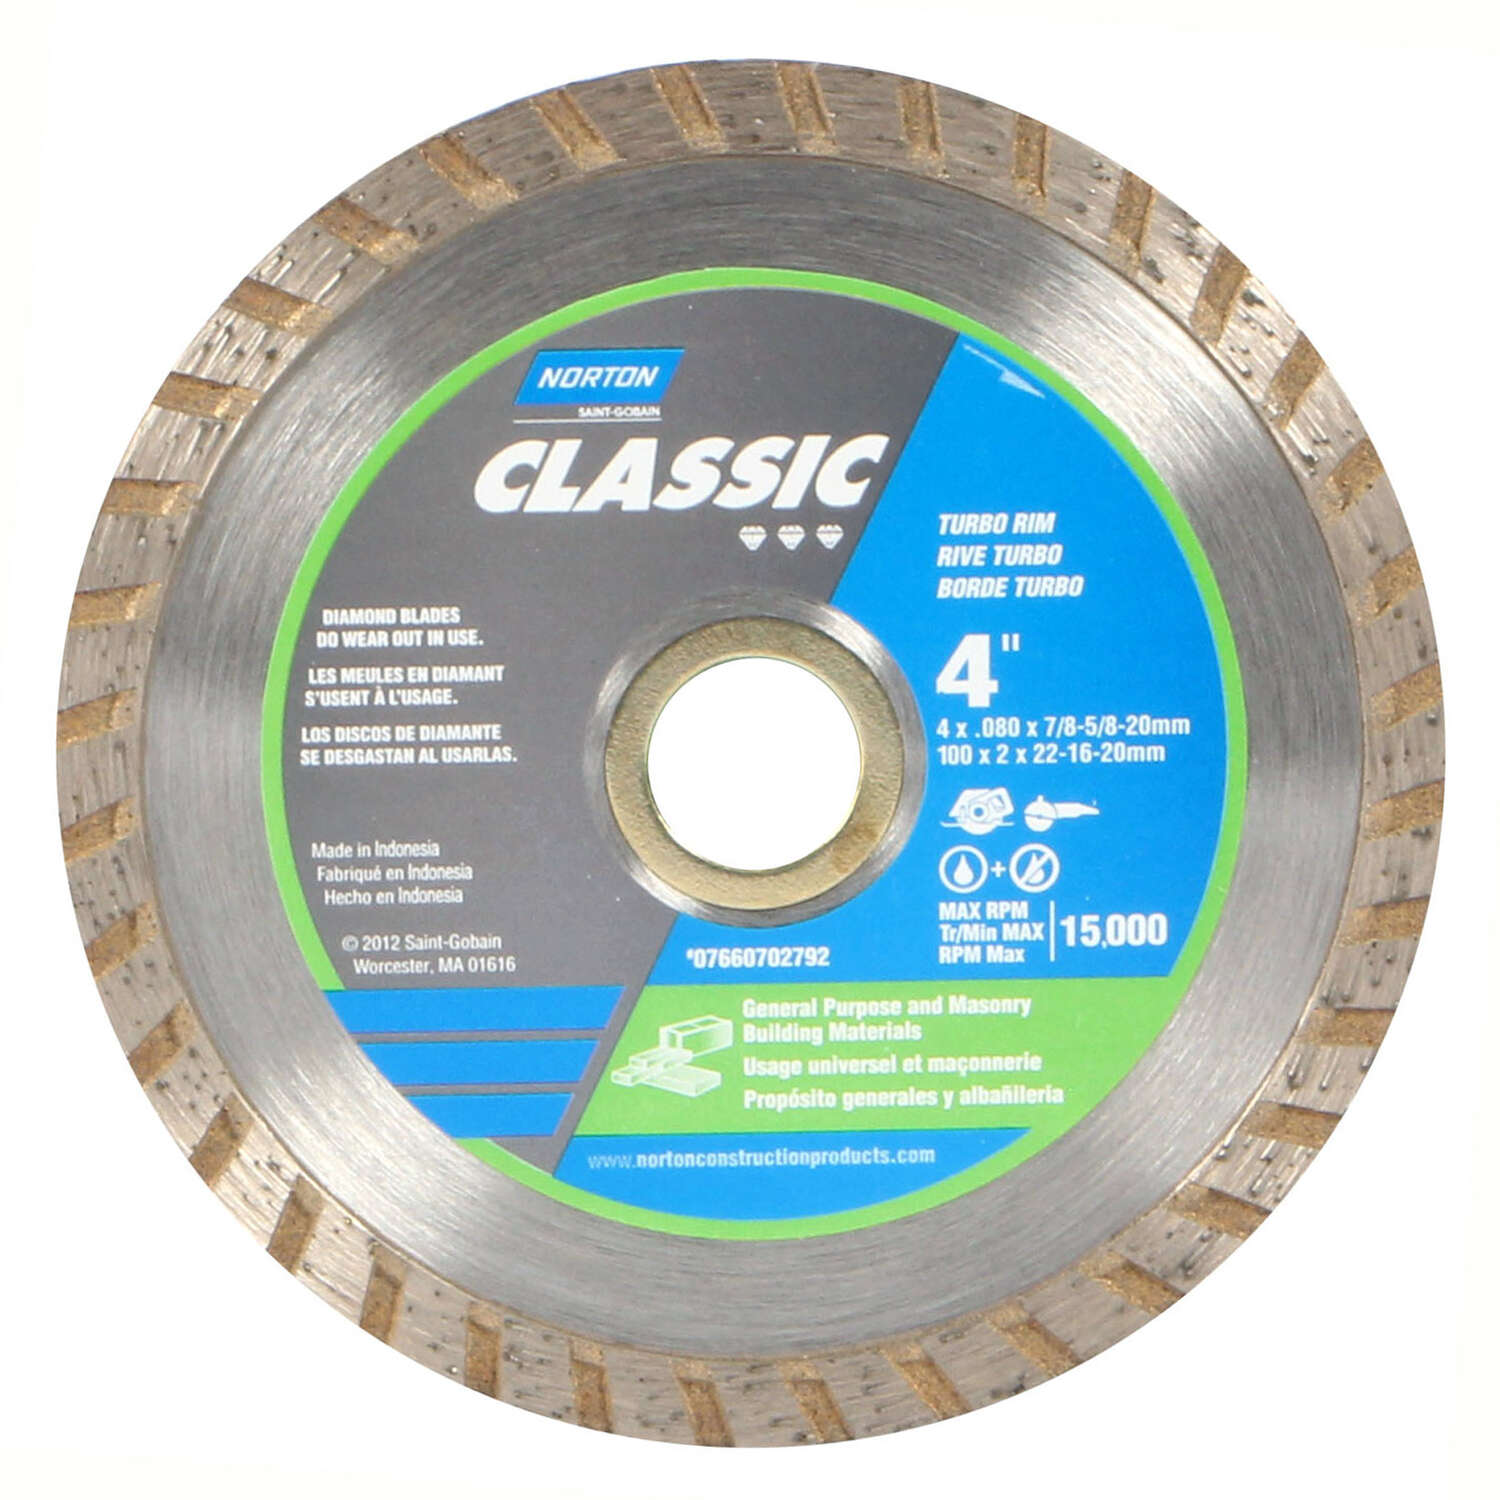 Norton  Classic  4  0.08 in.  Classic  Diamond  1 pc. Turbo Diamond Saw Blade  5/8 and 7/8